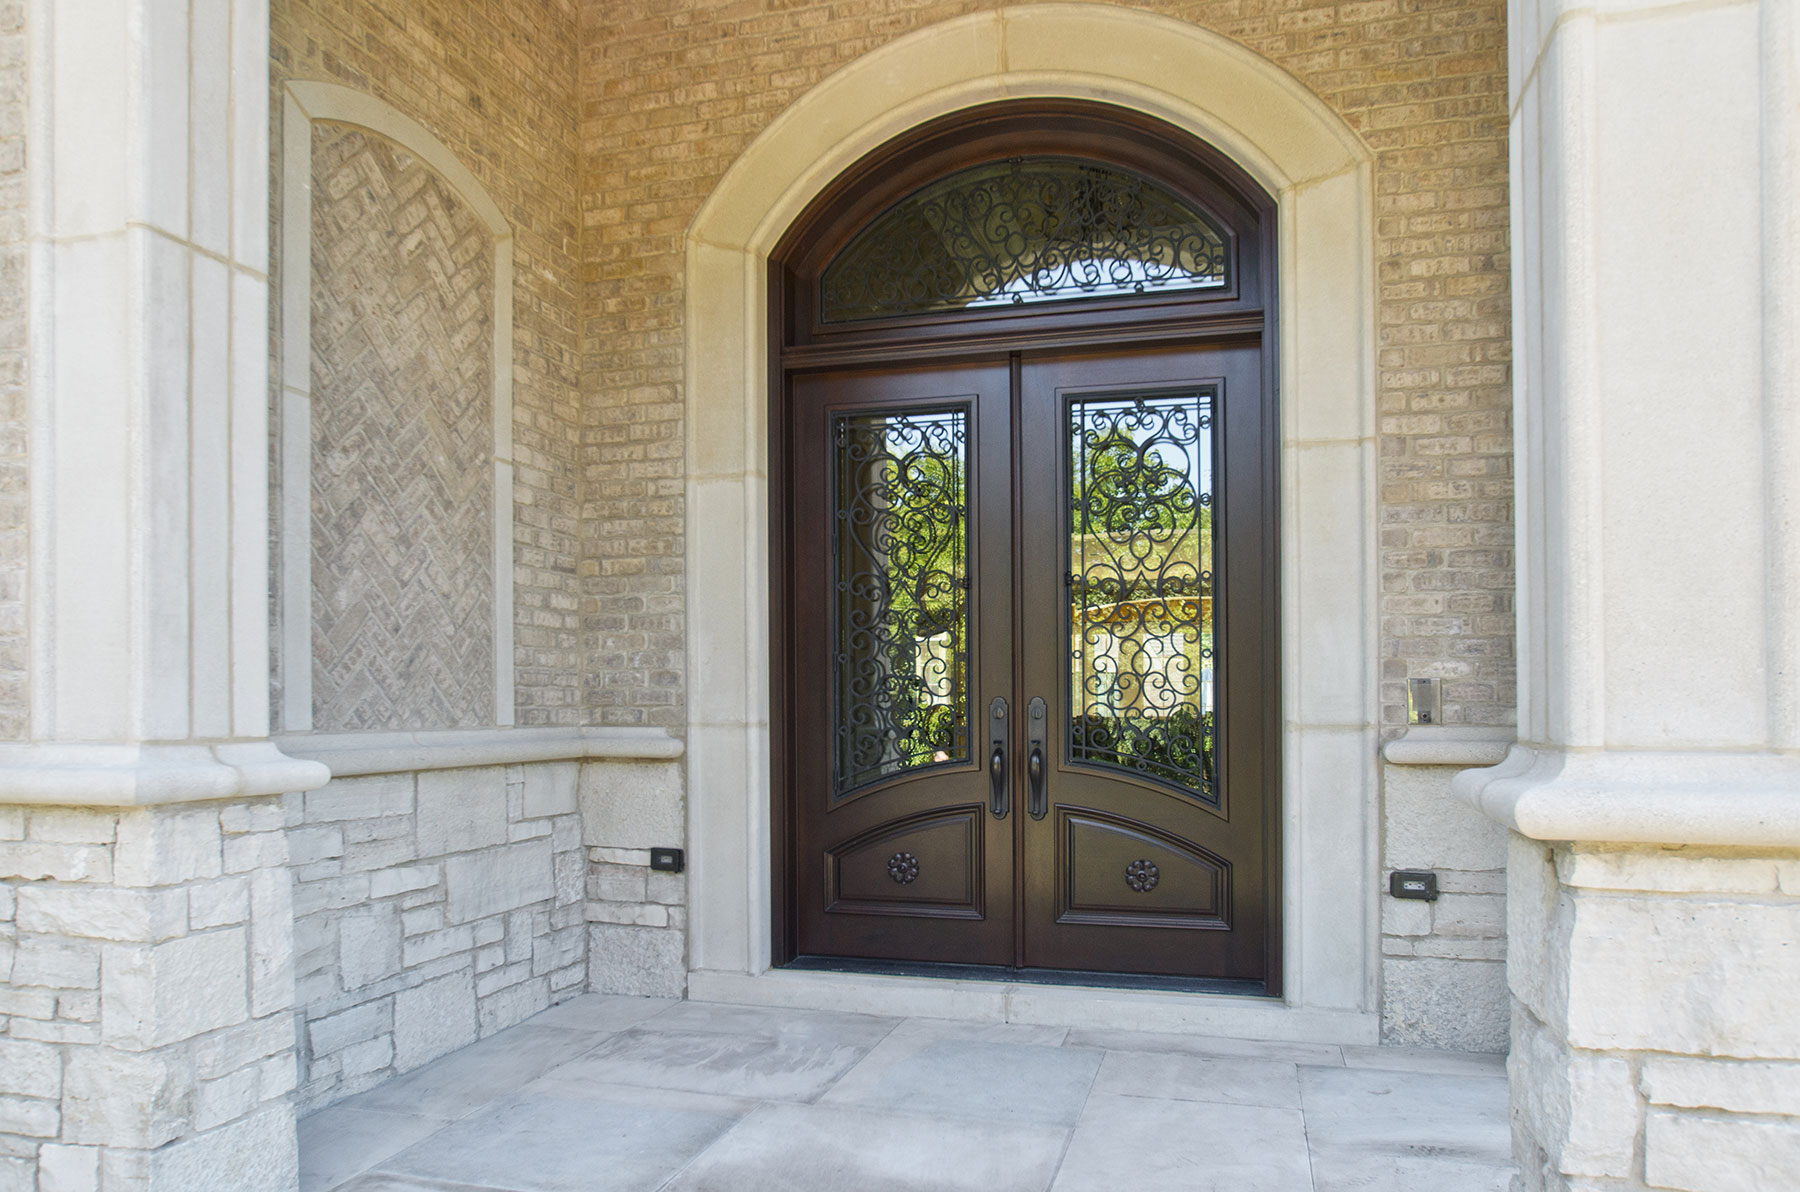 Glenview haus custom front door design a growing trend in for Custom exterior doors